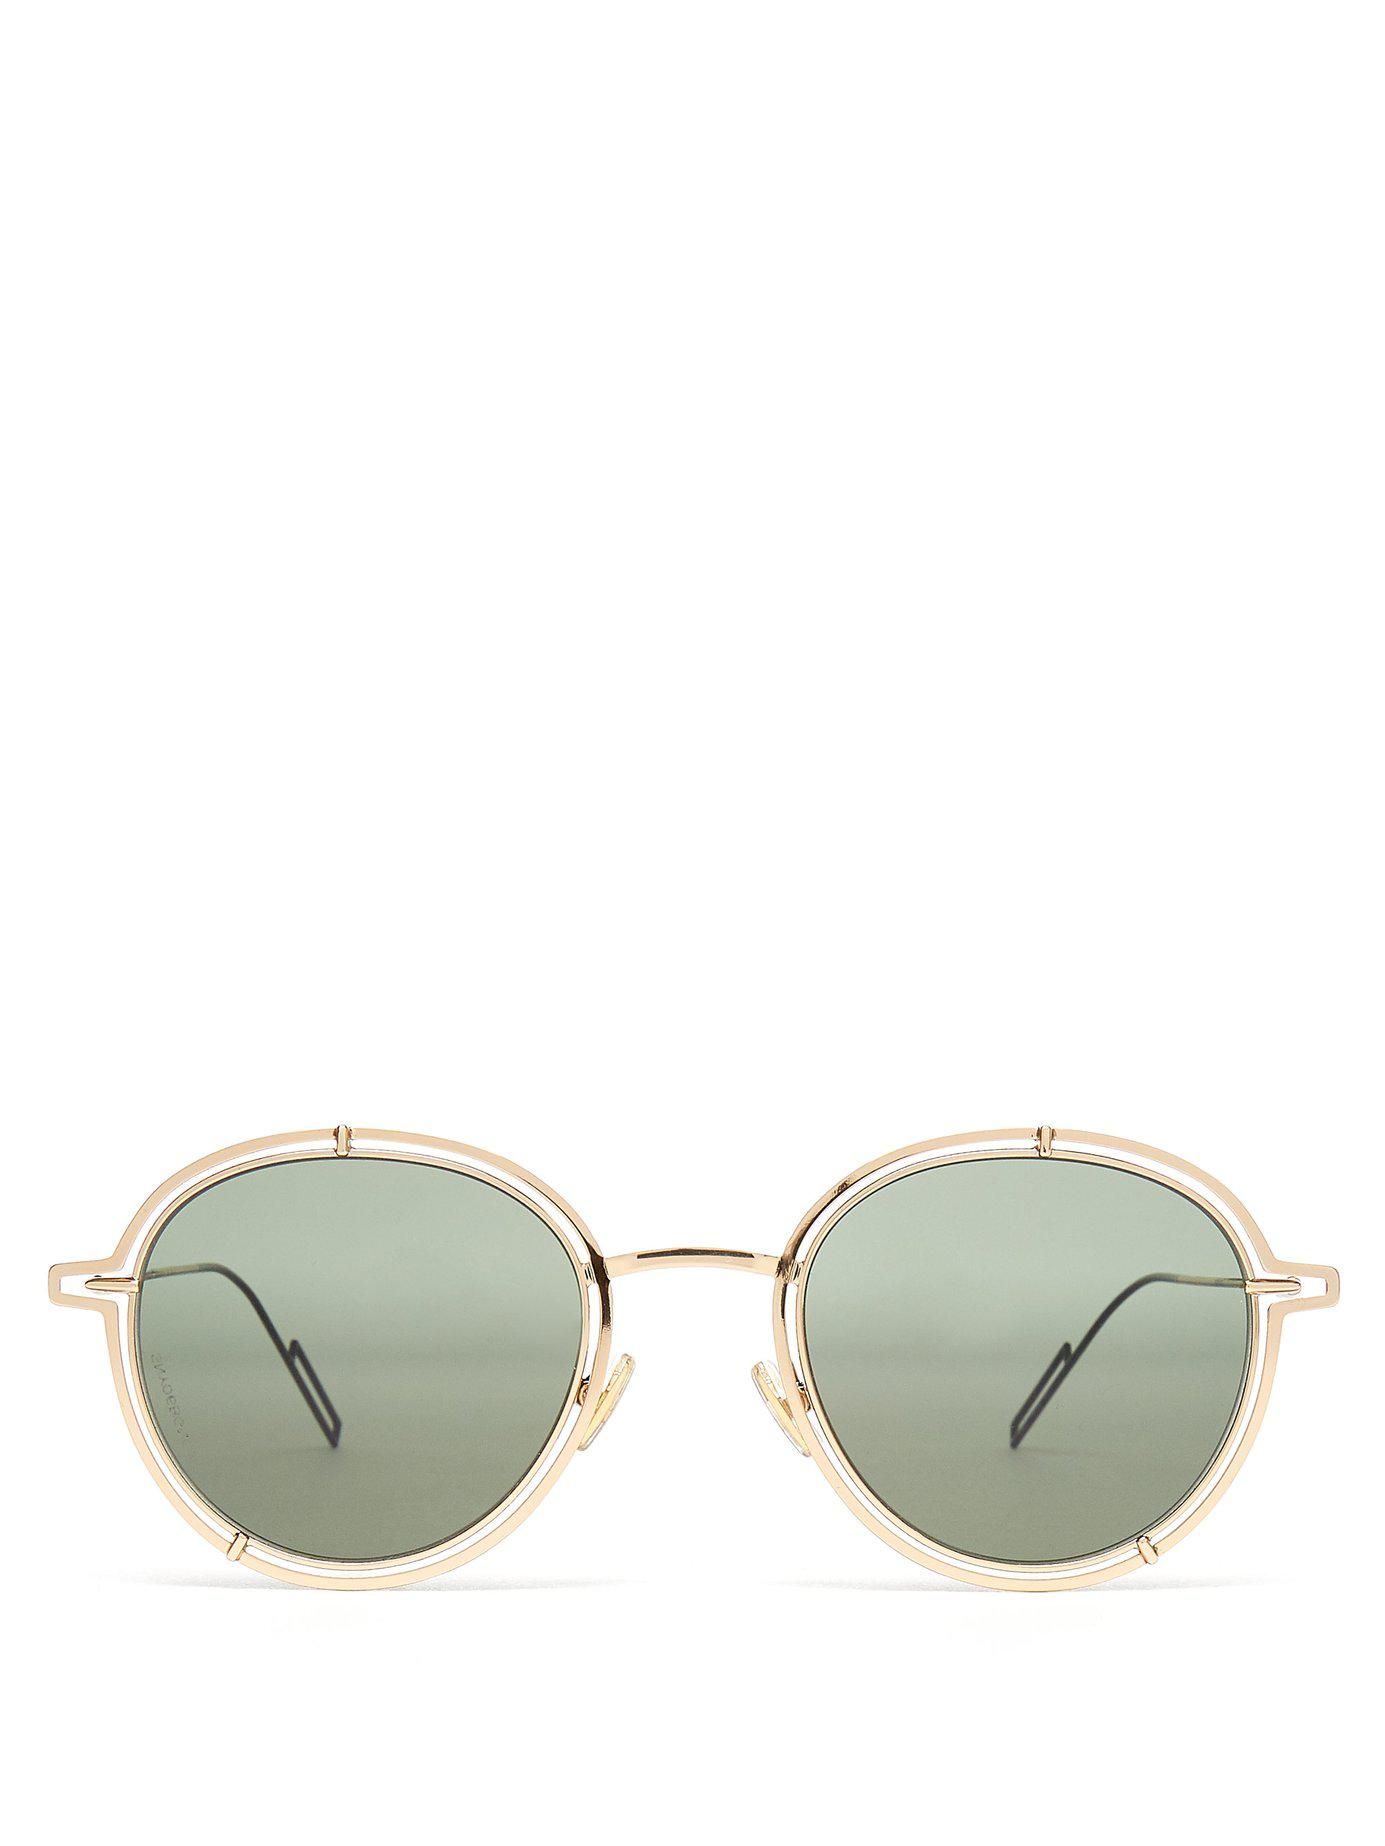 8ba6d50aa9 Lyst - Dior Homme Dior0210s Round Frame Sunglasses in Metallic for Men